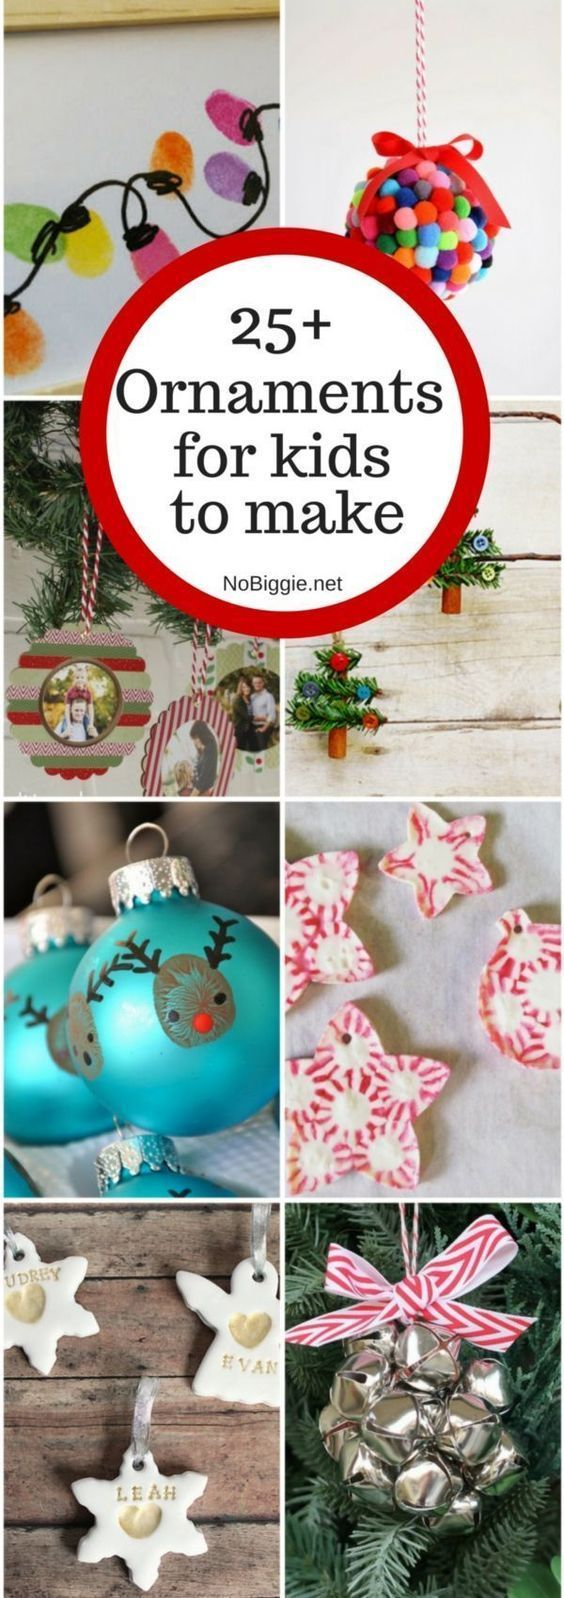 girls craft night ideas best 25 crafts ideas on craft 4554